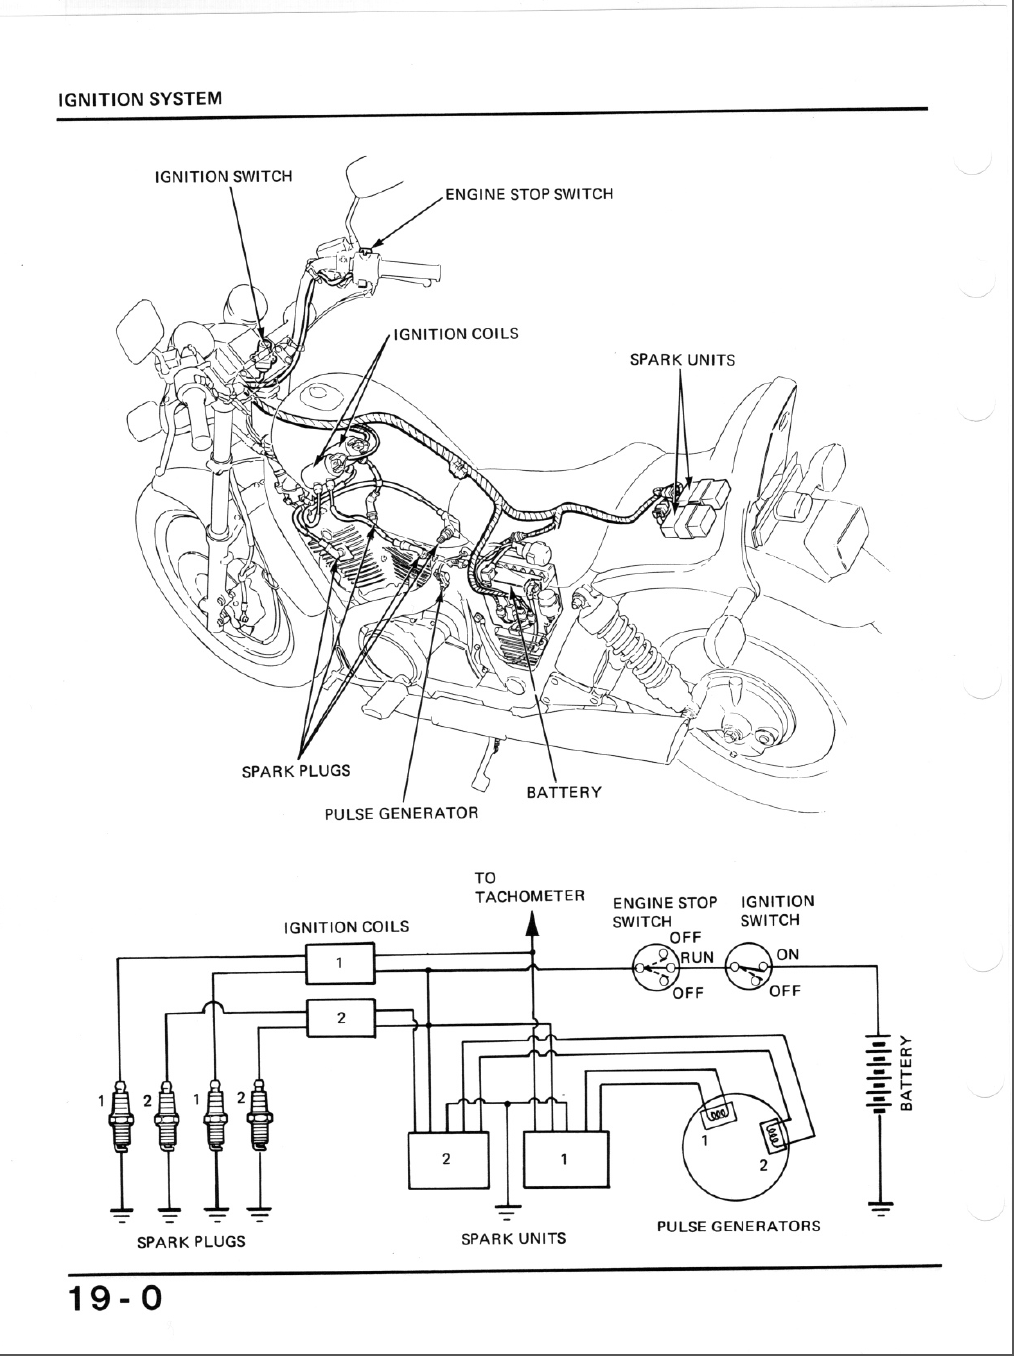 9267d1409799693 1984 honda shadow 700 ignition system 1984 honda shadow 700 Chinese ATV Wiring Diagrams at gsmx.co